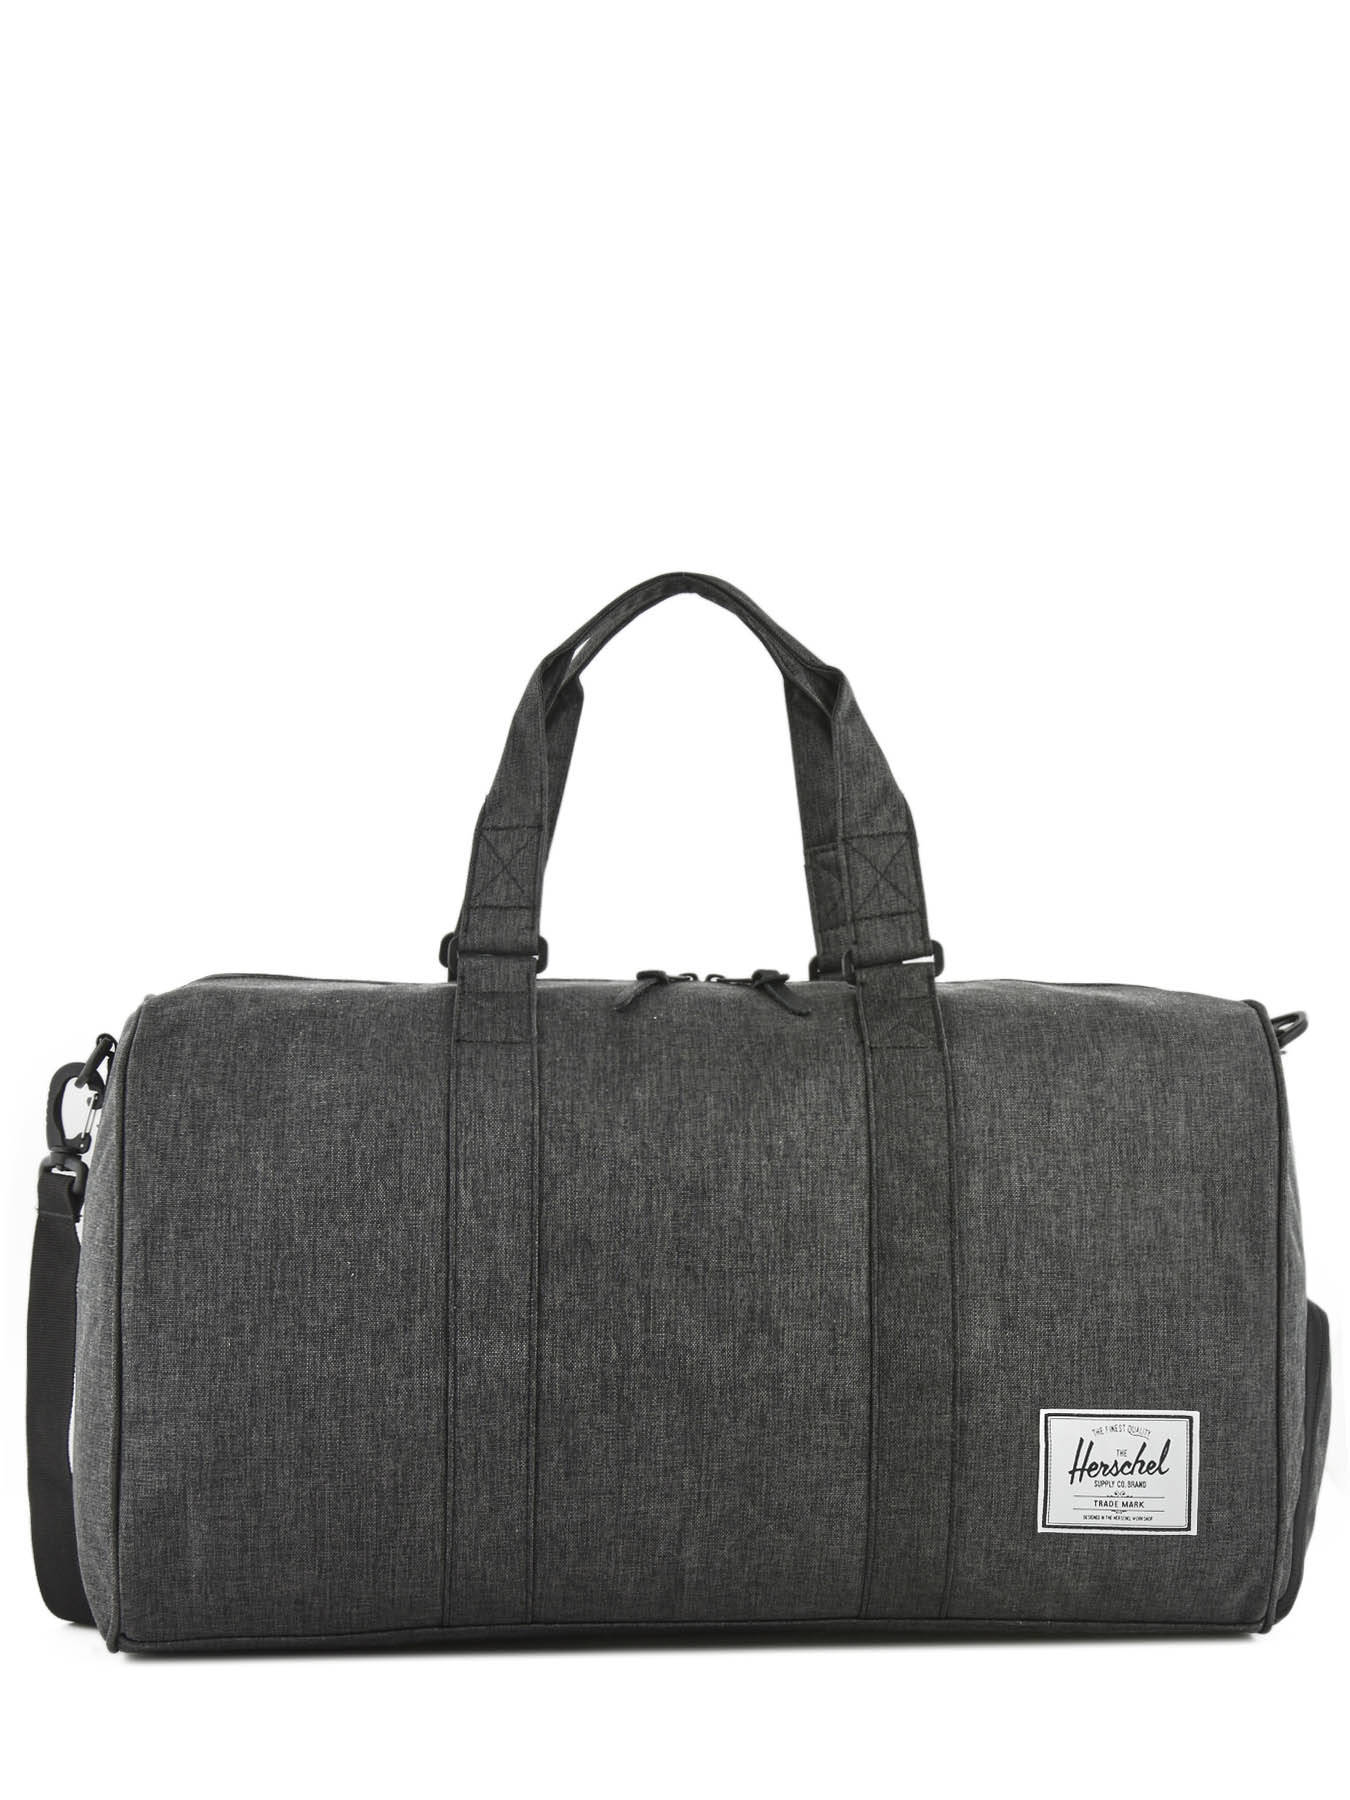 Sac be Sur Herschel Sport Et Supply Edisac Novel Voyage 8nq8frgxU